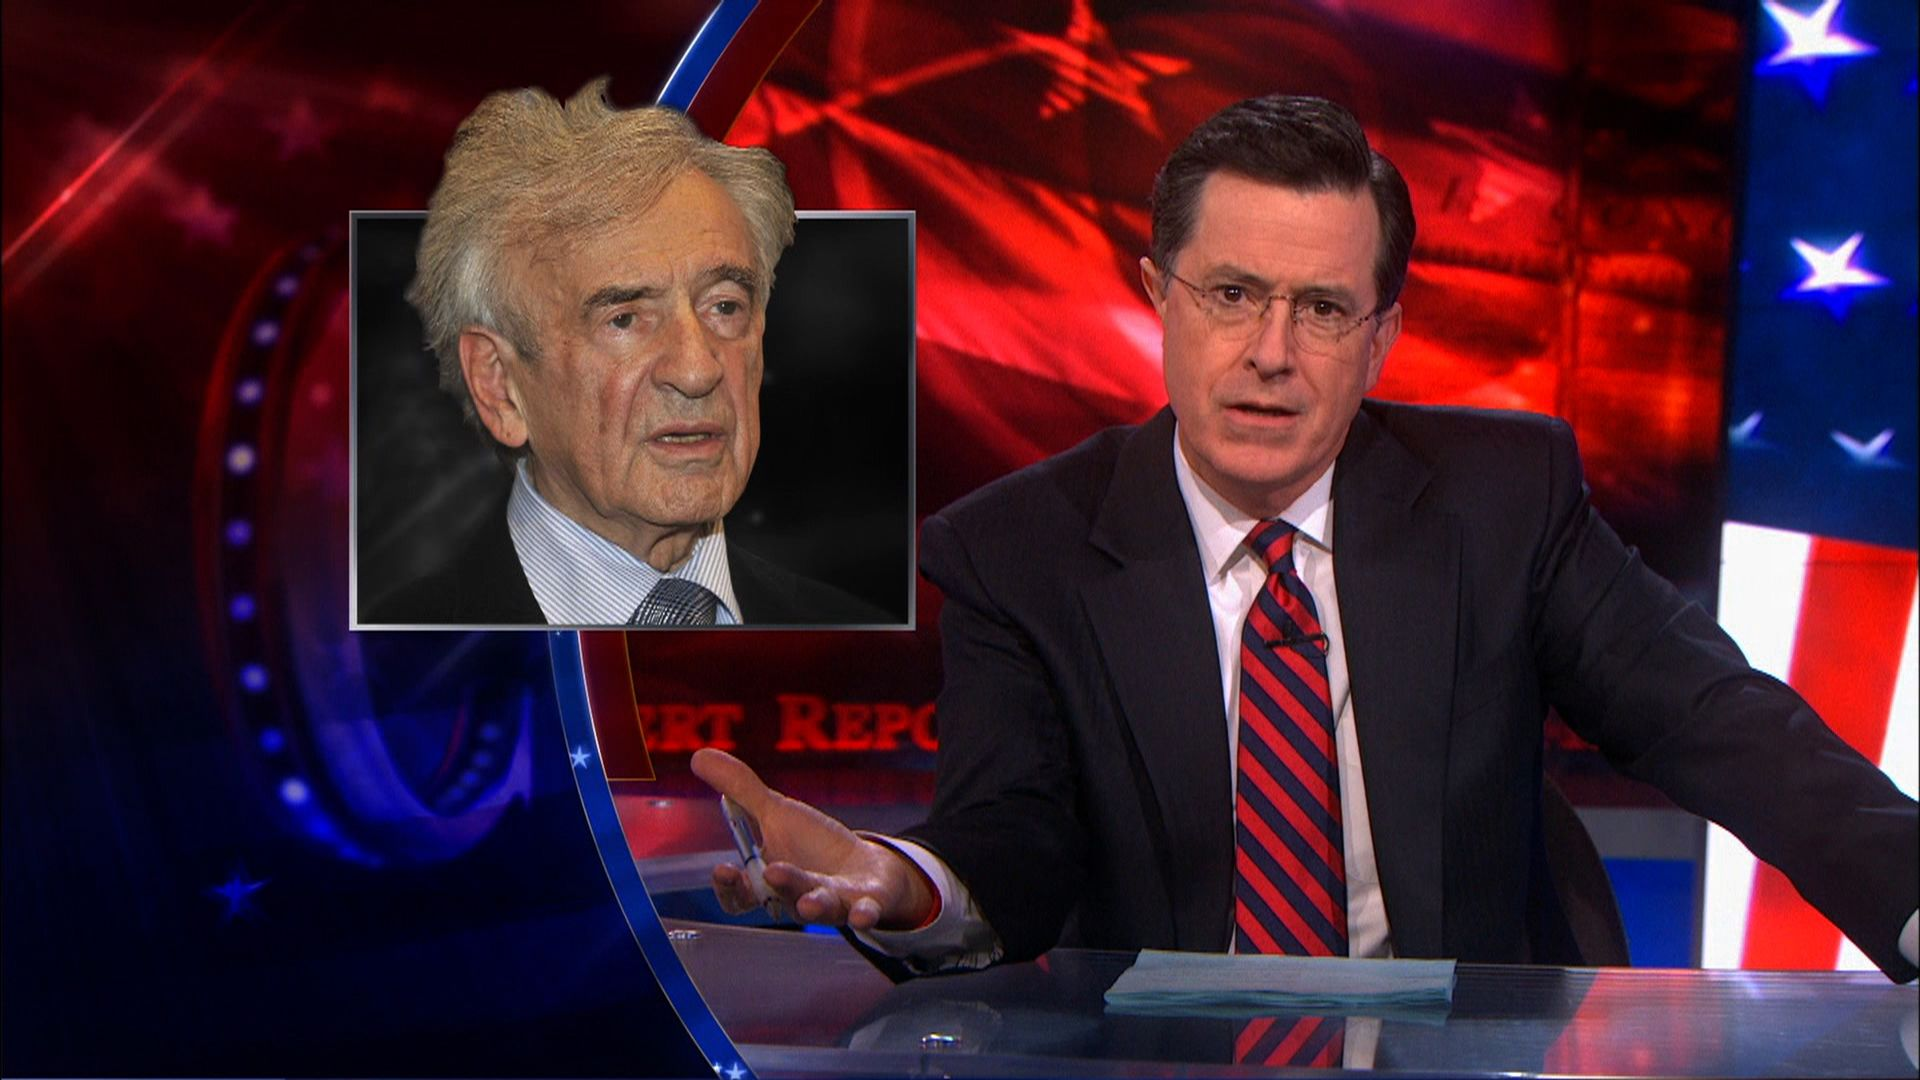 colbert report book of mormon The colbert report yahweh or no way mormon religion lookin' good god polls advertising approval ratings mitt romney indecision catholic indecision 2012 elections.